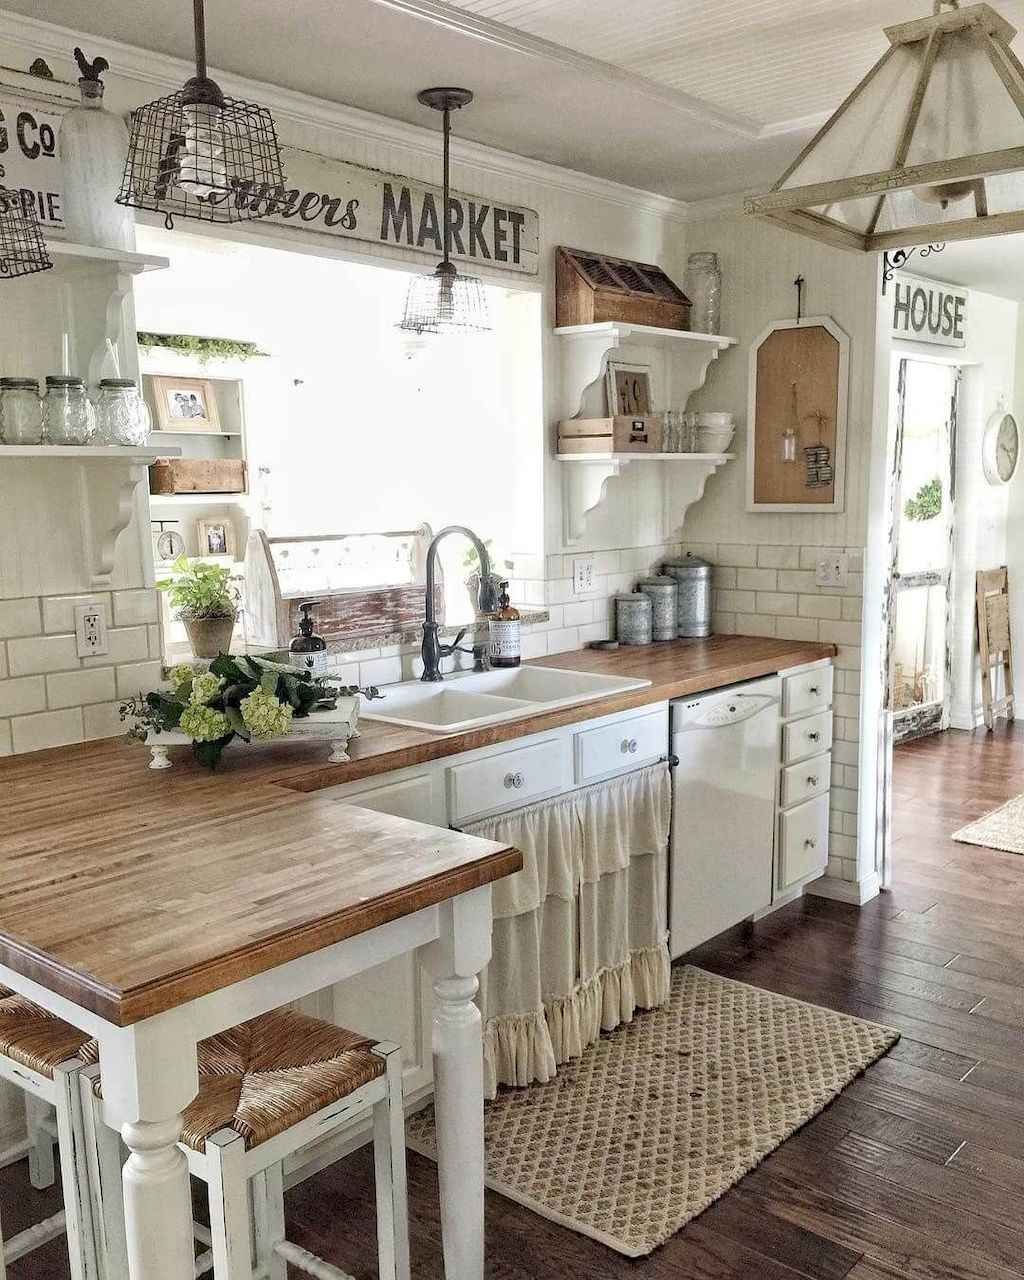 Best Rustic Farmhouse Kitchen Cabinet Makeover Ideas 29